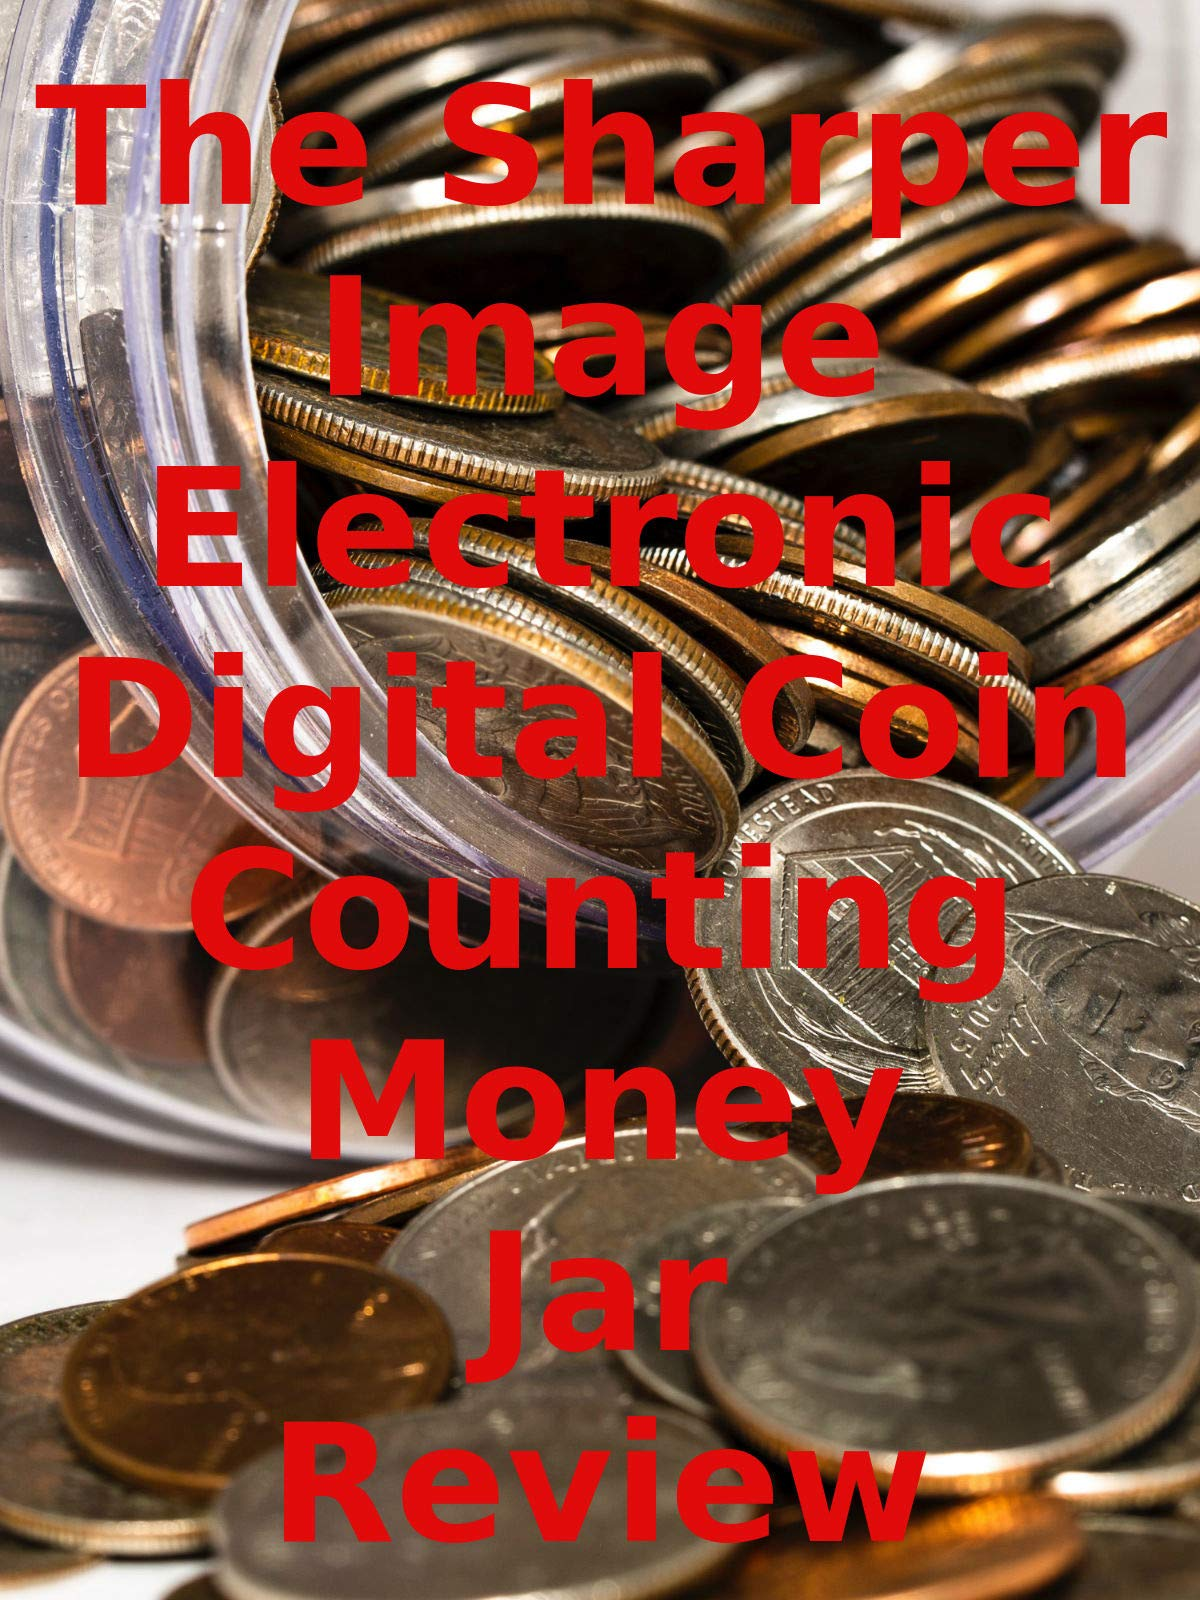 Review: The Sharper Image Electronic Digital Coin Counting Money Jar Review on Amazon Prime Video UK